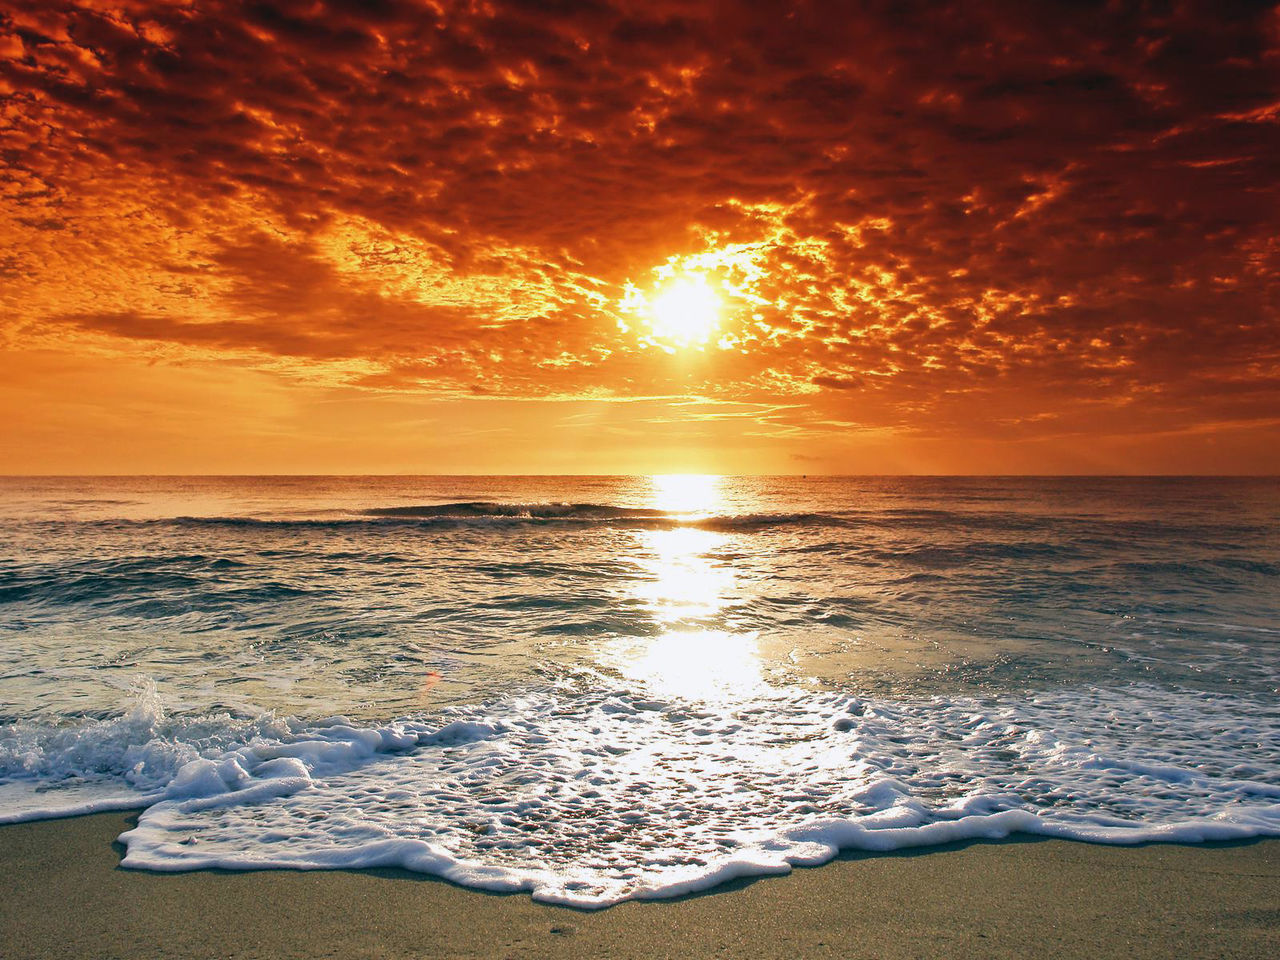 Summer view. Beach Beauty In Nature Cloud - Sky Horizon Over Water Live For The Story Nature No People Orange Color Outdoors Reflection Sand Scenics Sea Sky Summer Summer Views Sun Sunlight Sunset Tranquil Scene Tranquility Water Wave